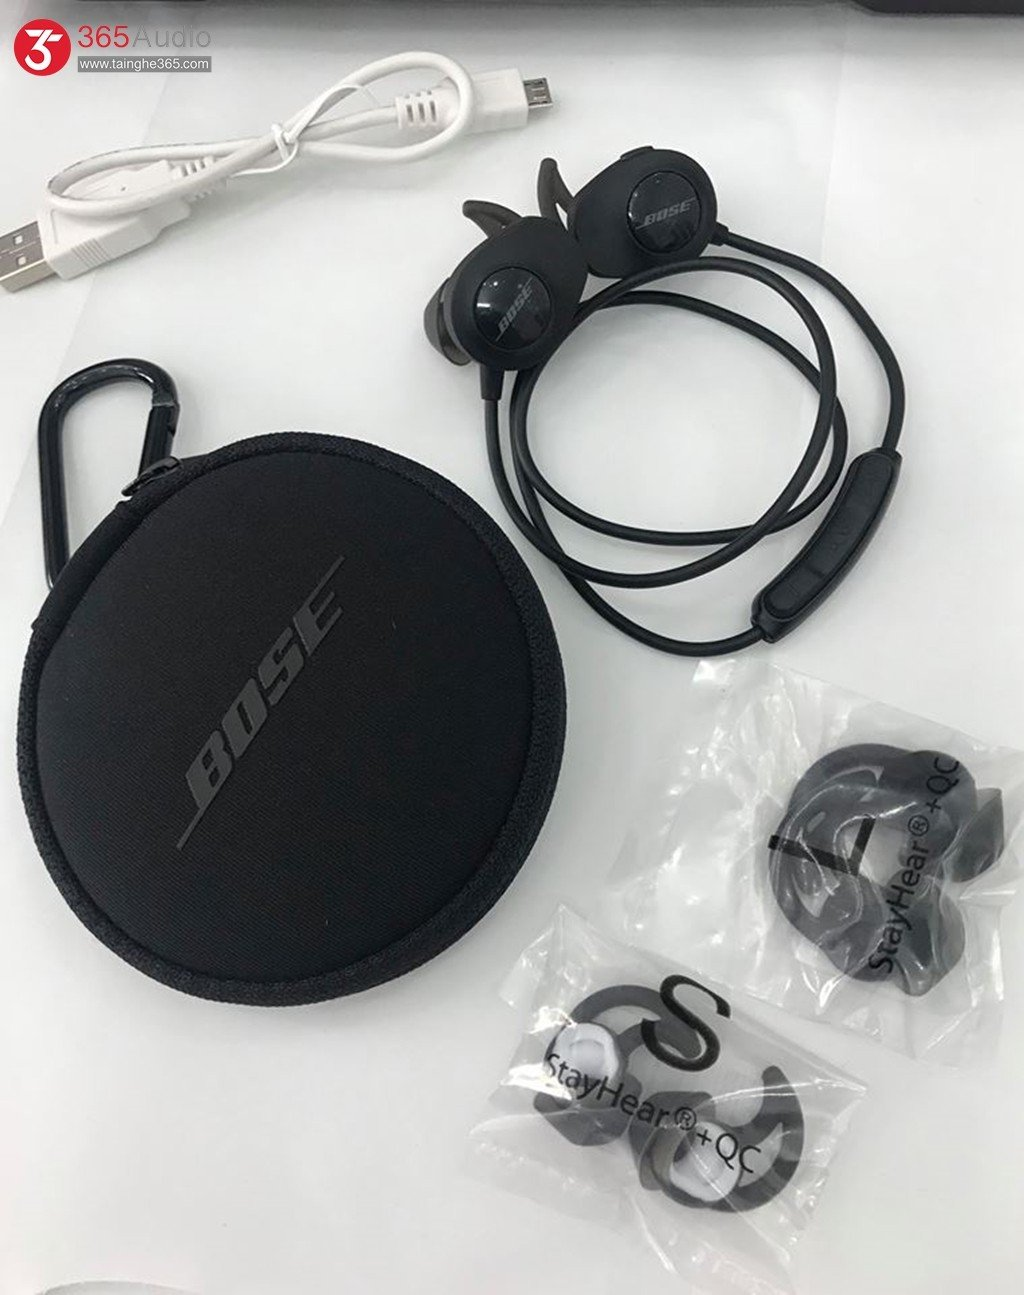 tai nghe Bose SoundSport Wireless like new nobox